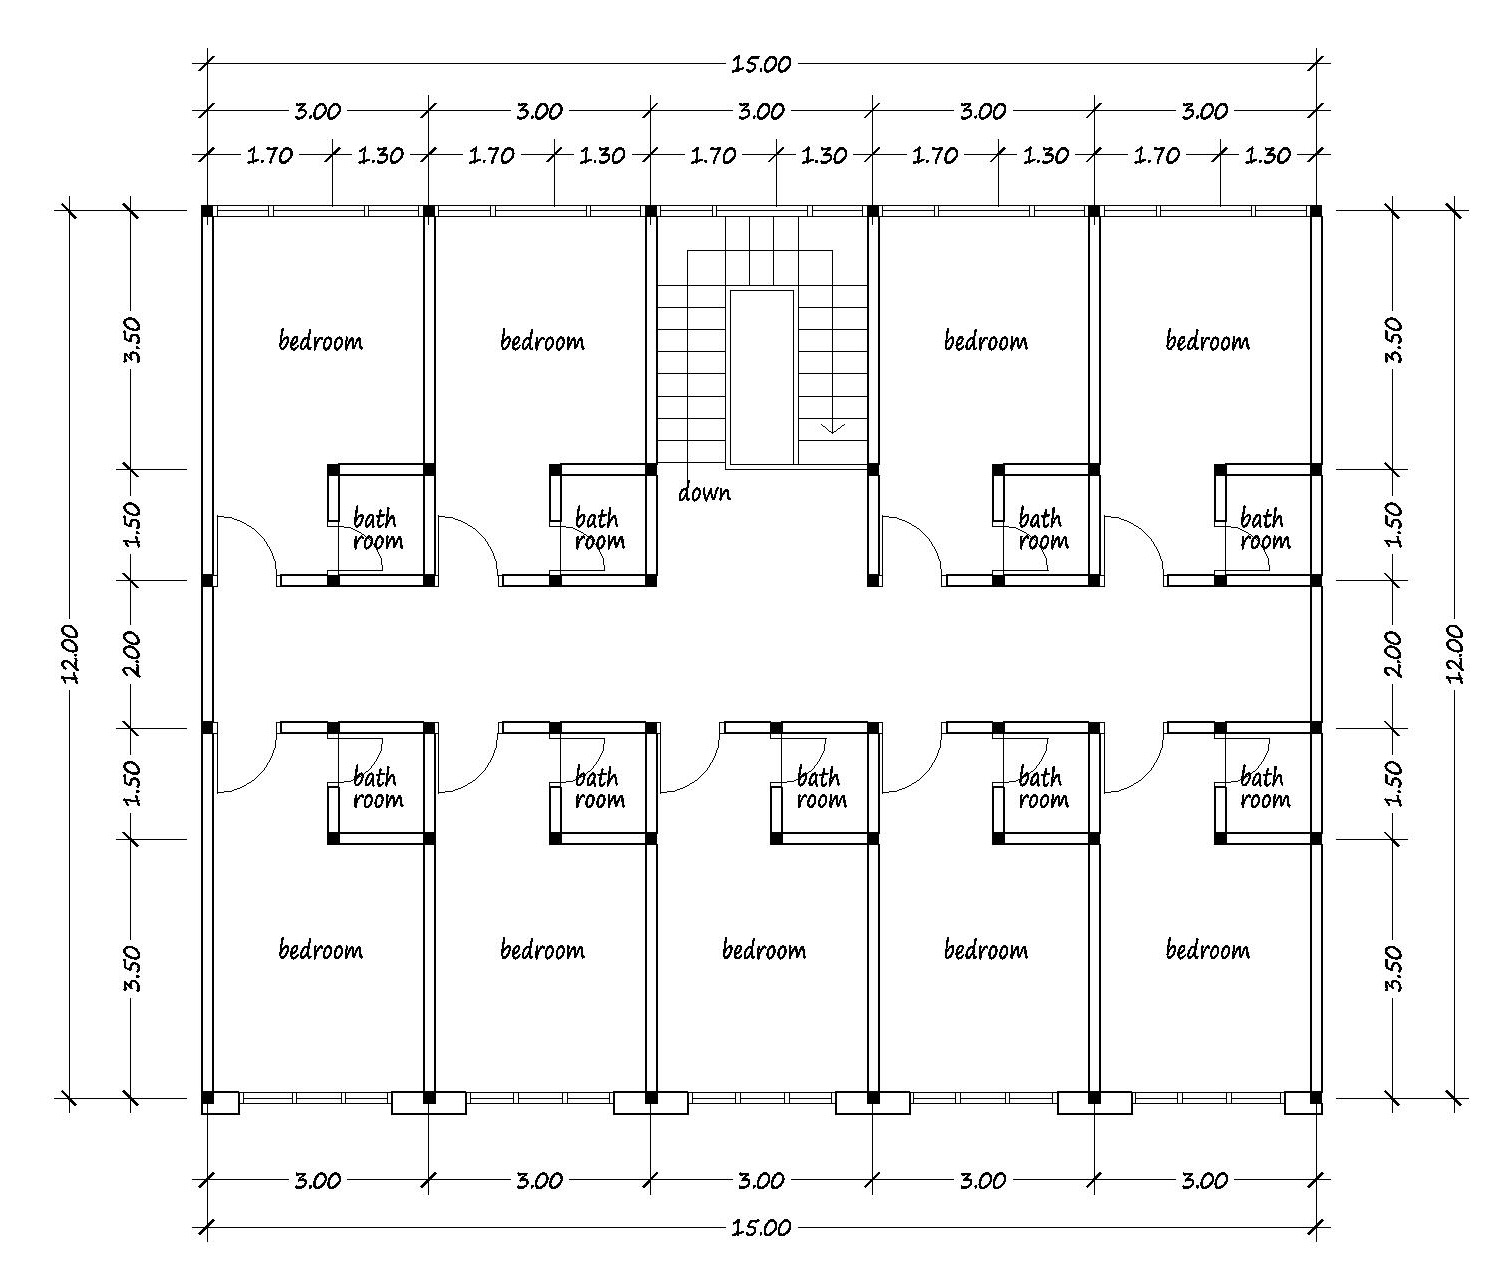 House plans for you plans image design and about house for Lay out house floor plans